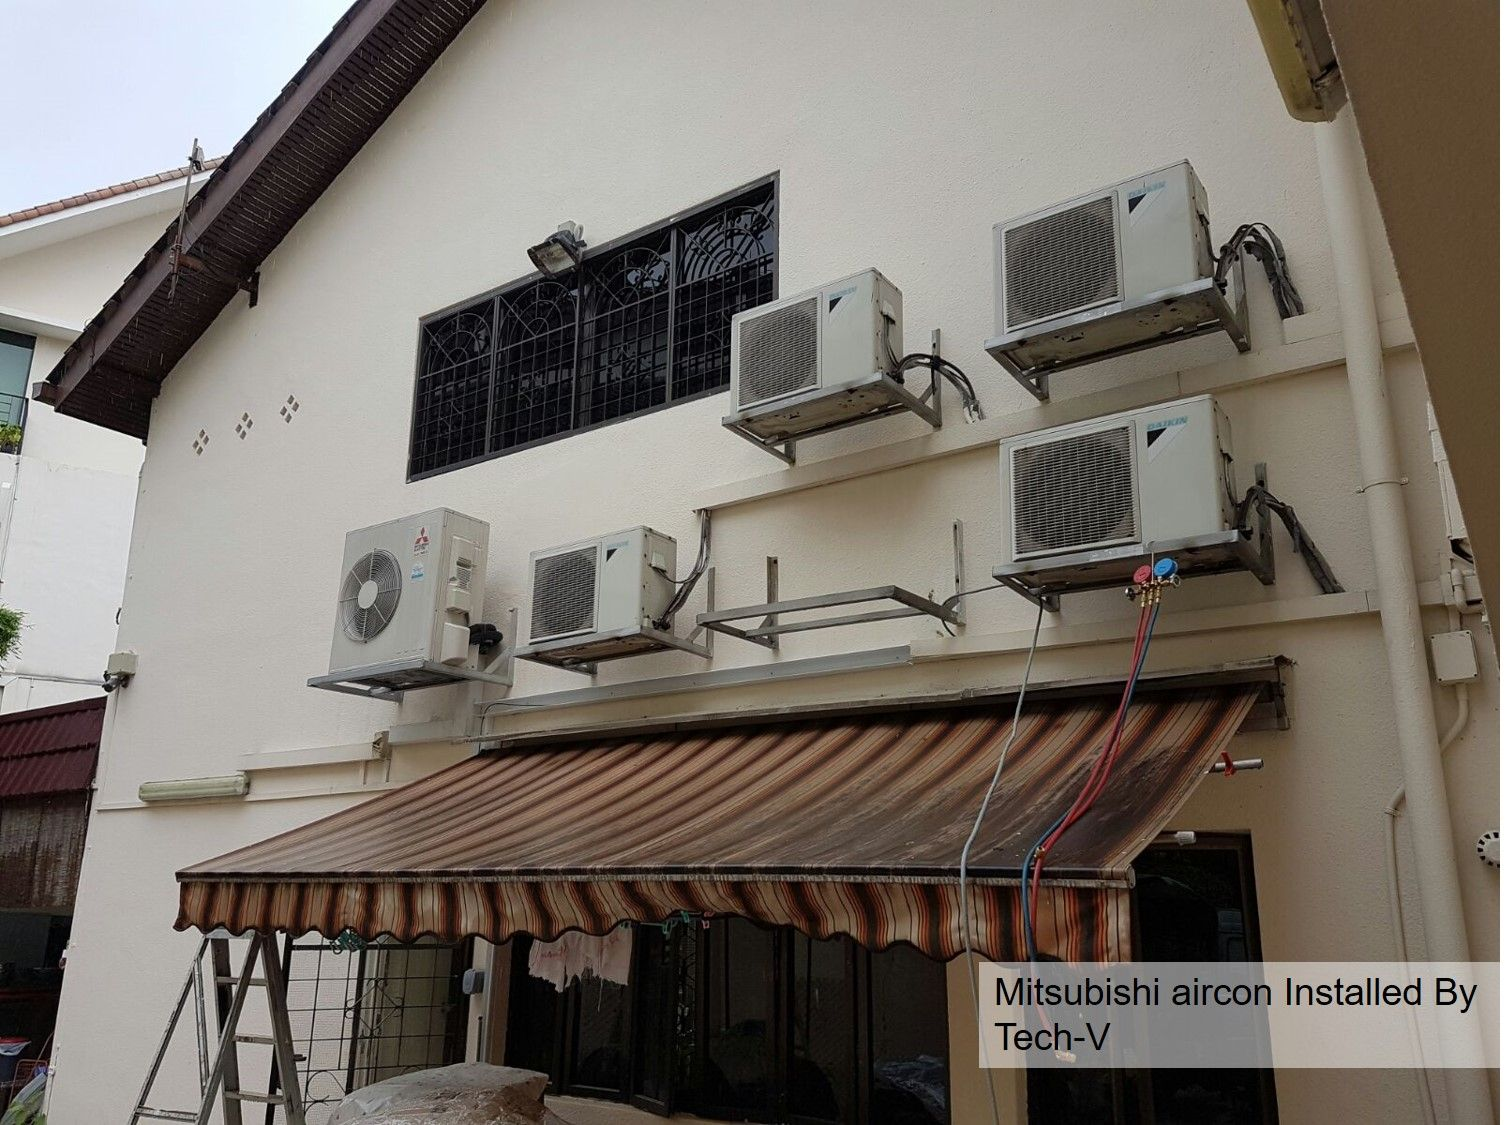 DID YOU KNOW? Old aircon consume much more electricity